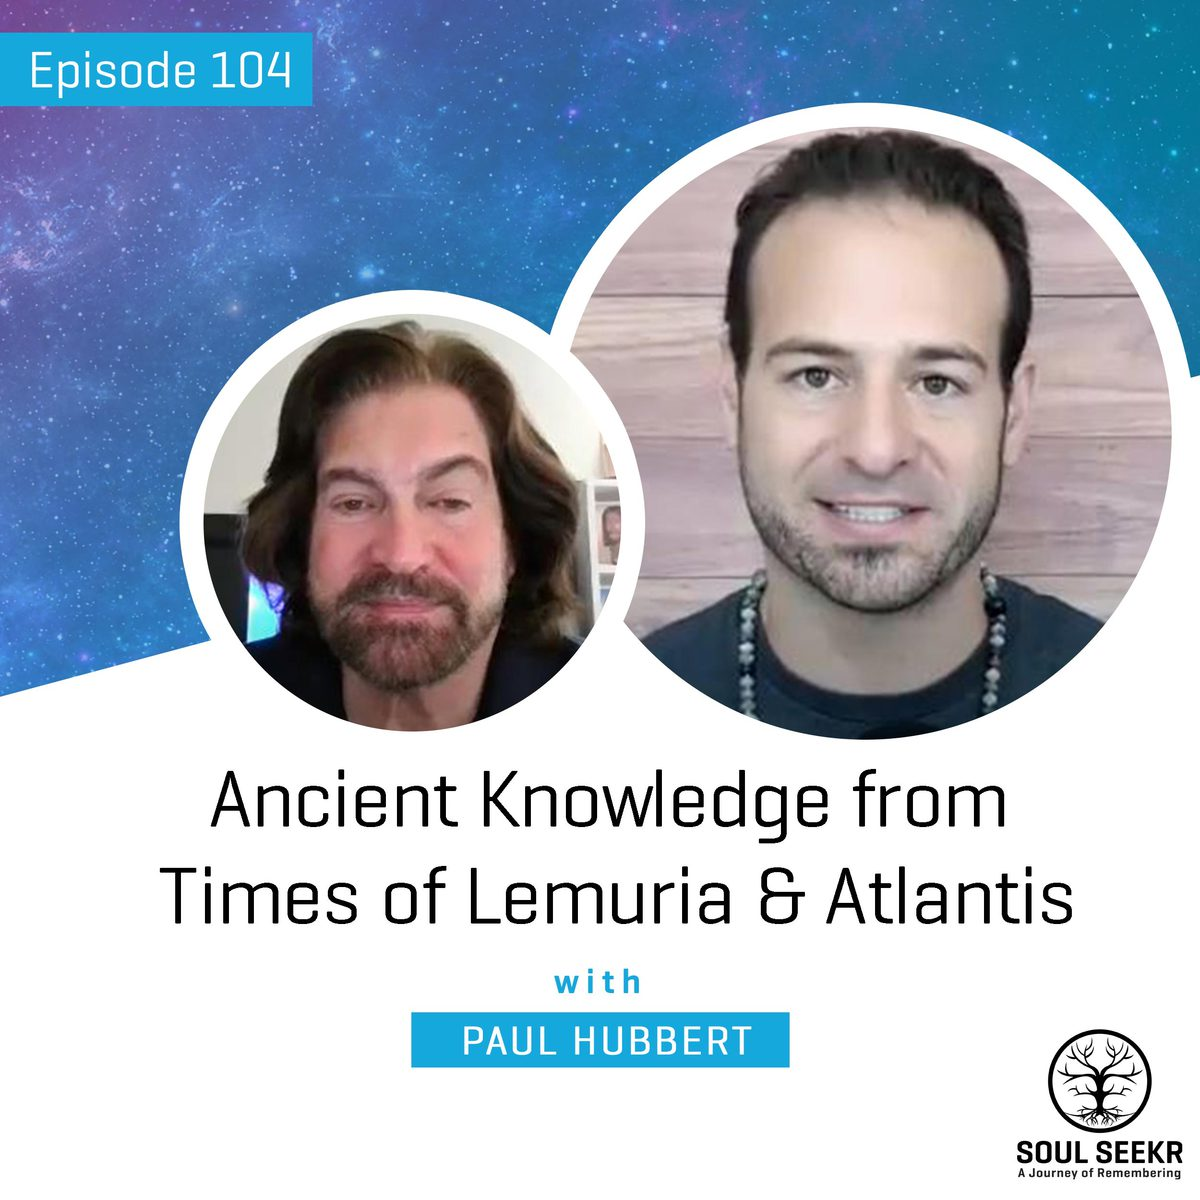 #104: Ancient Knowledge from Times of Lemuria & Atlantis w/ Paul Hubbert